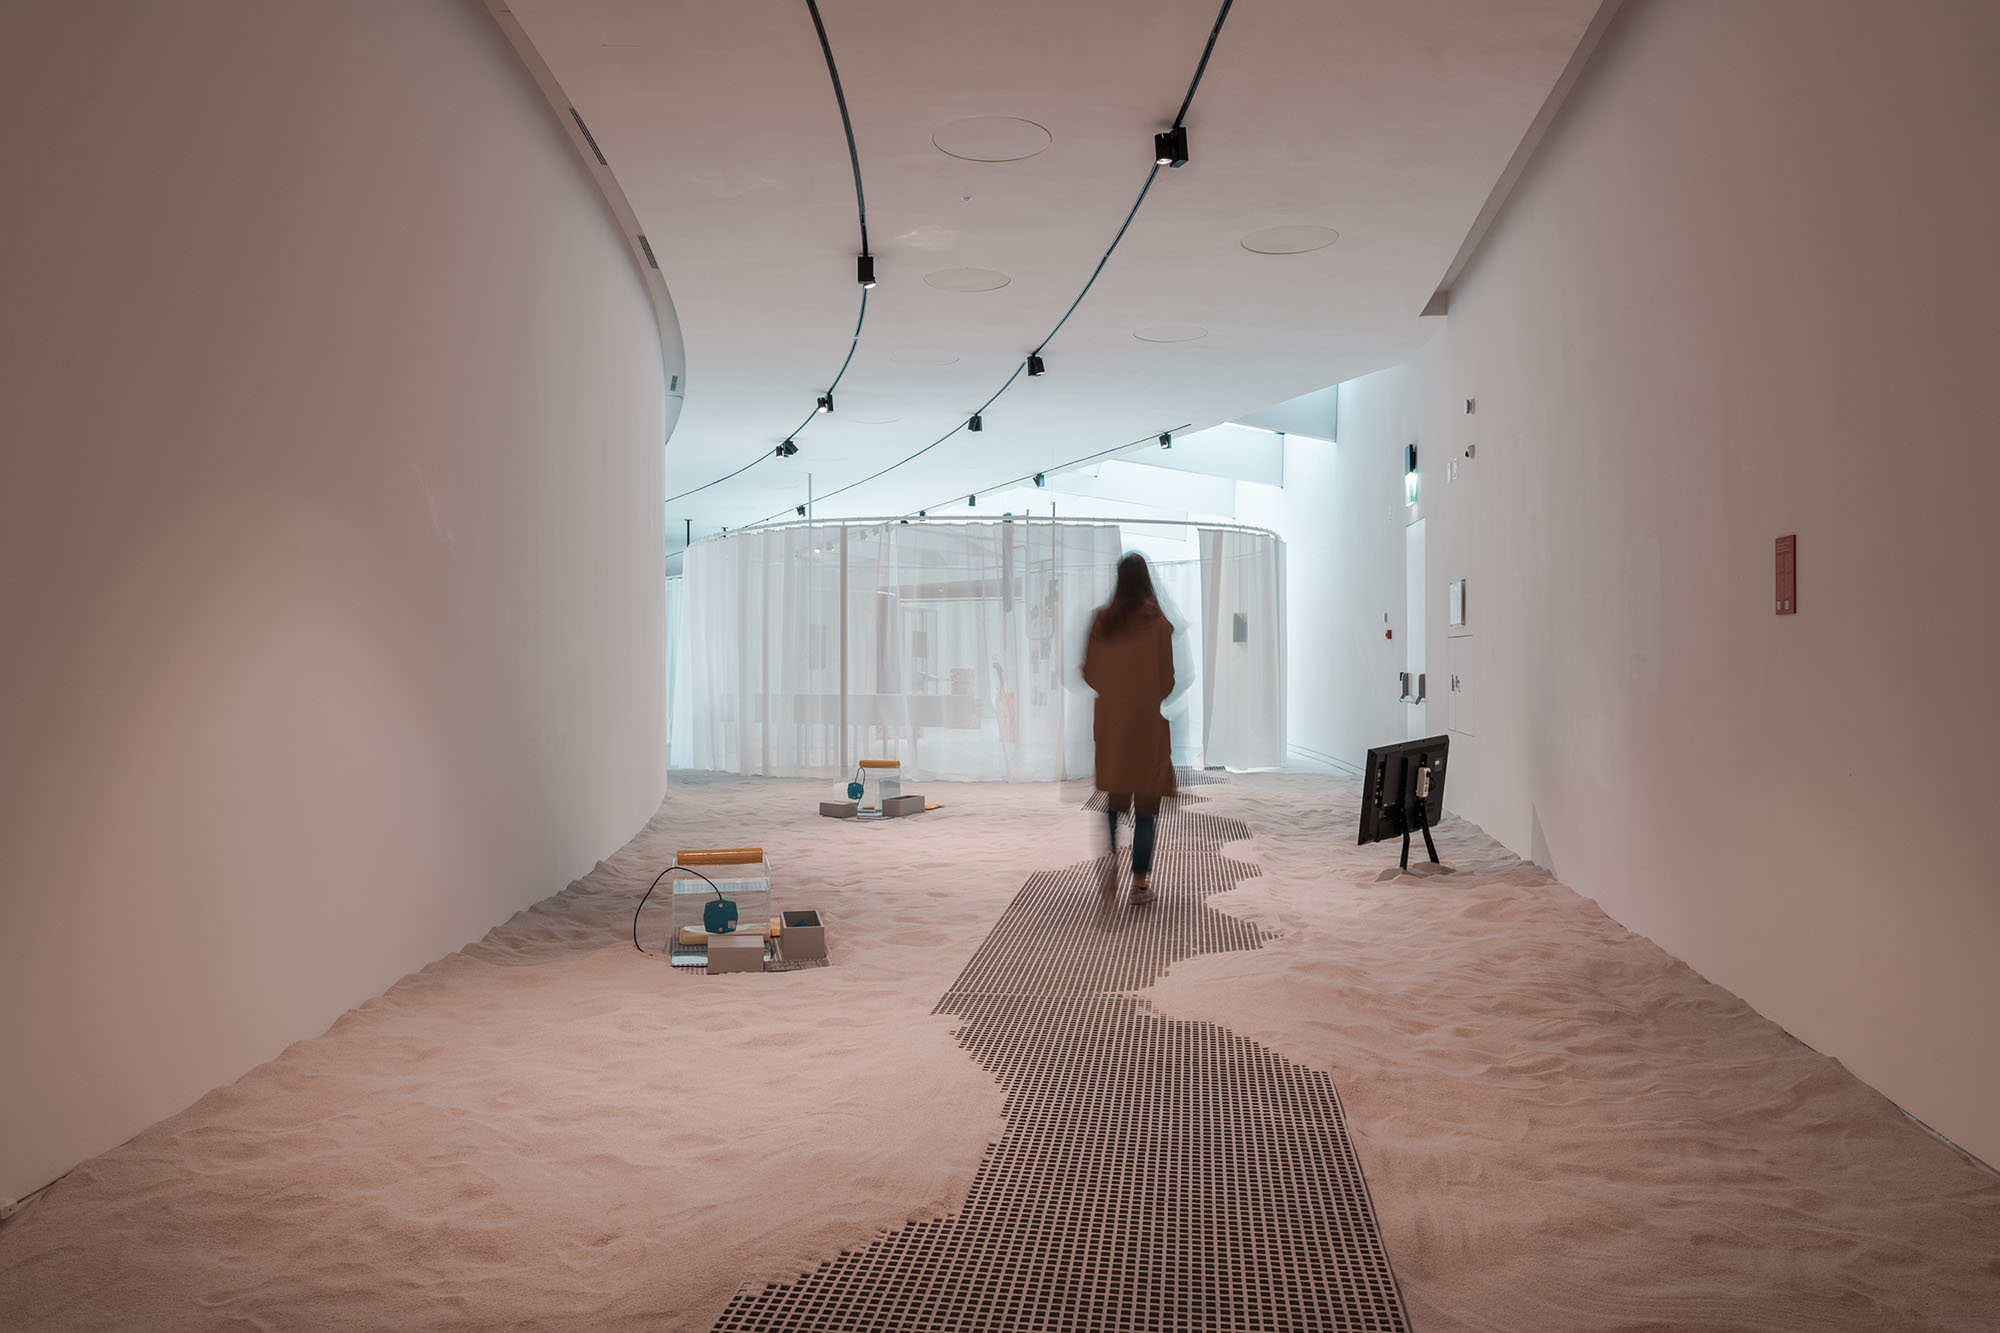 Aquaria. Or the Illusion of a Boxed Sea, installation view: Embassy of the North Sea with Stef Veldhuis, Sound of the North Sea. maat – Museum of Art, Architecture and Technology (Lisbon), 2021 © Courtesy of EDP Foundation. Photography by Pedro Pina.